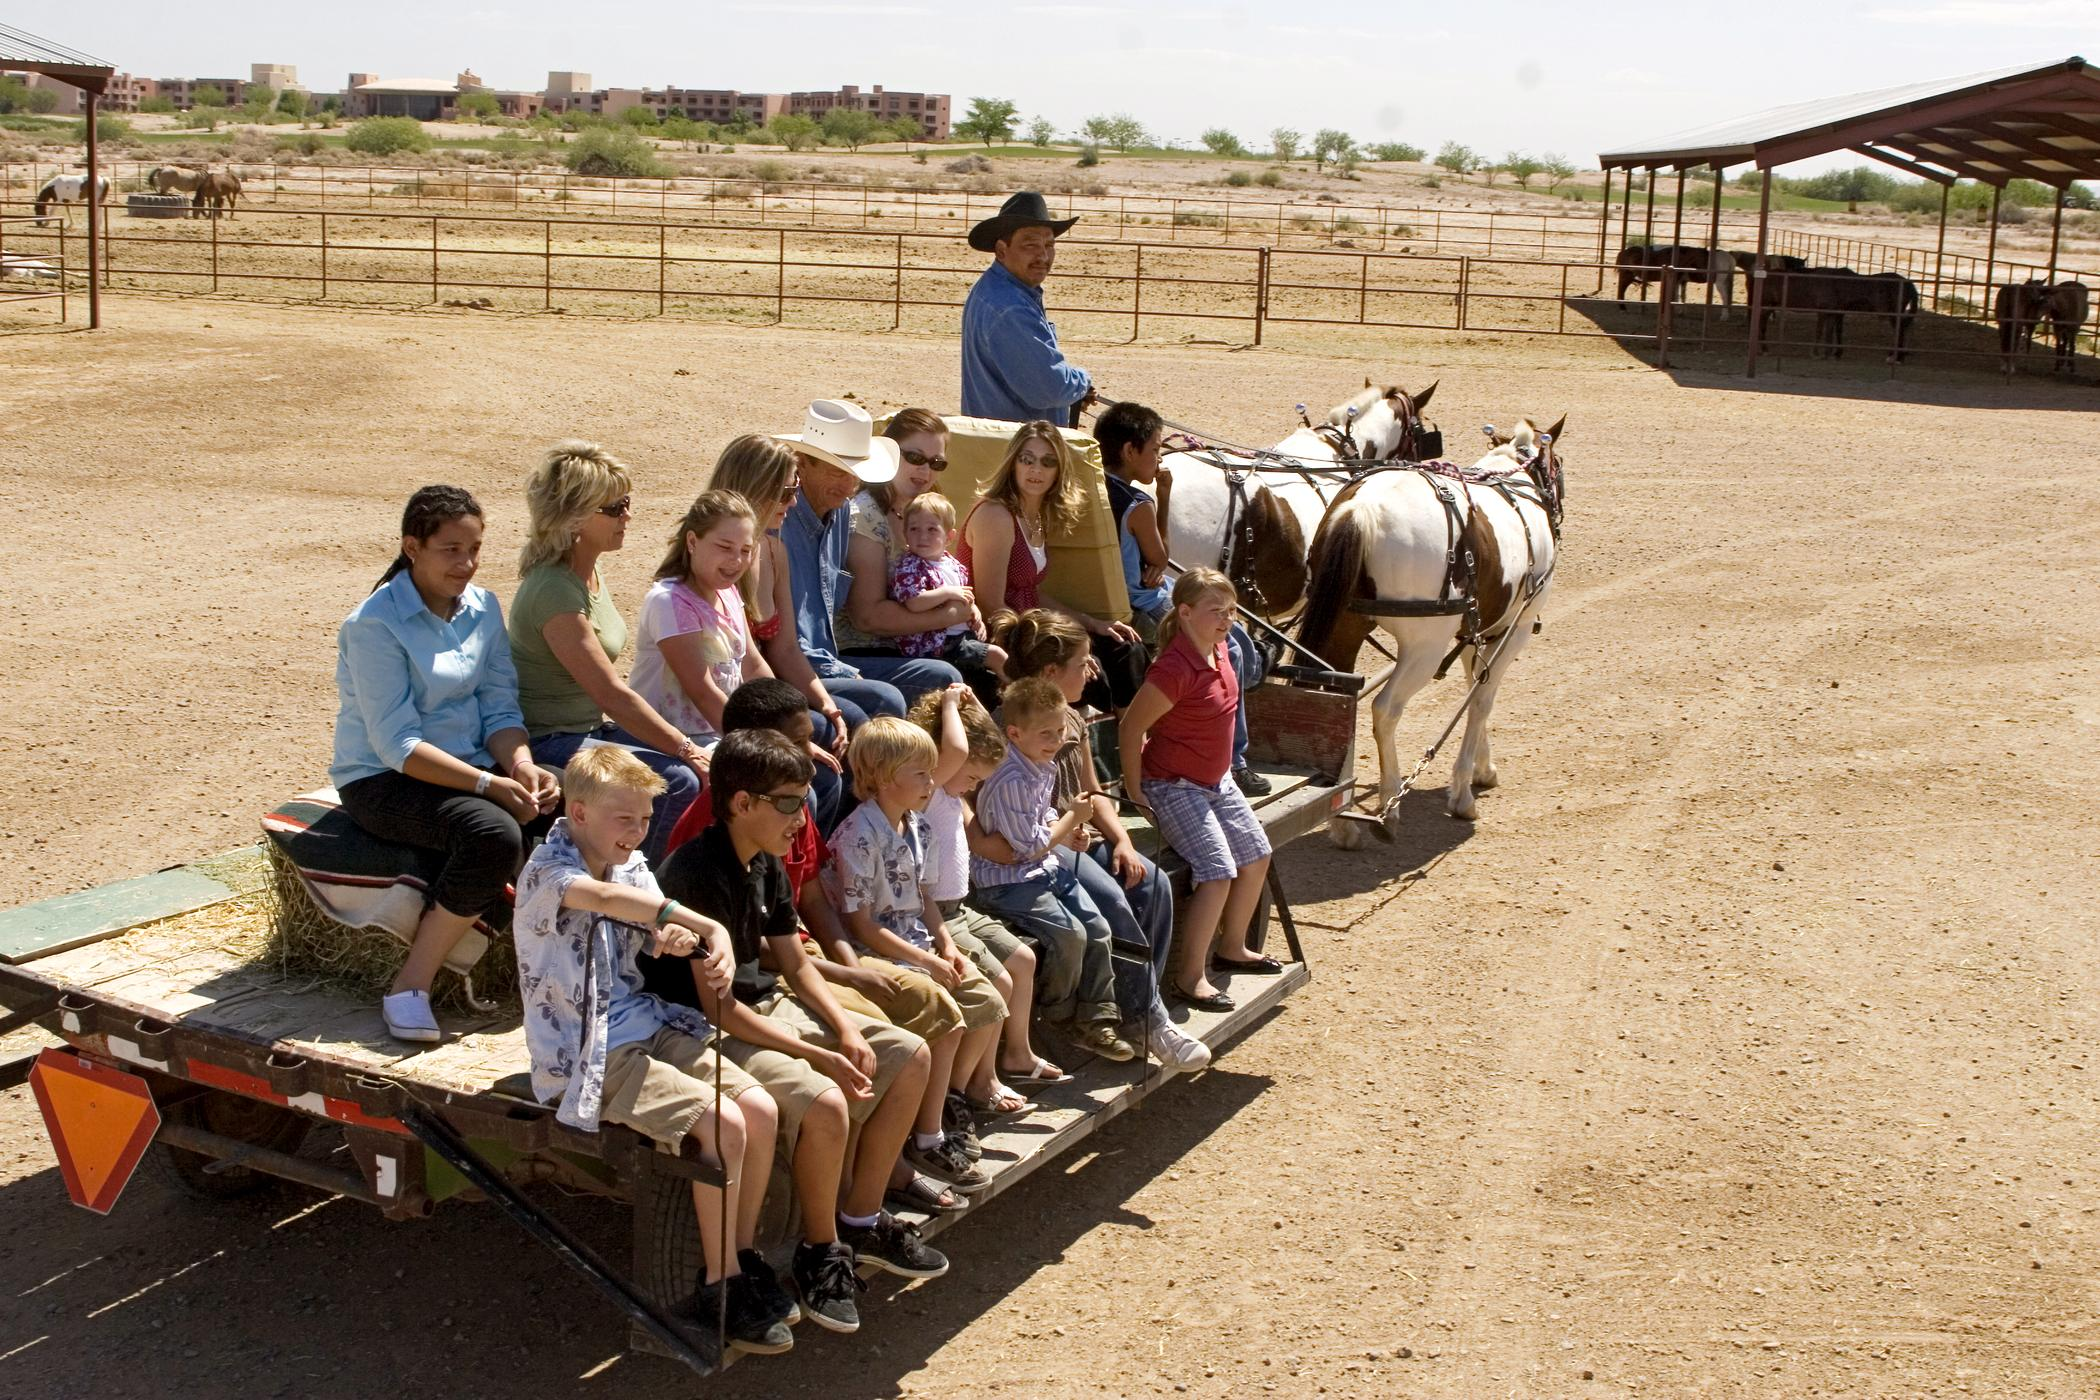 Resort Activities - Rawhide